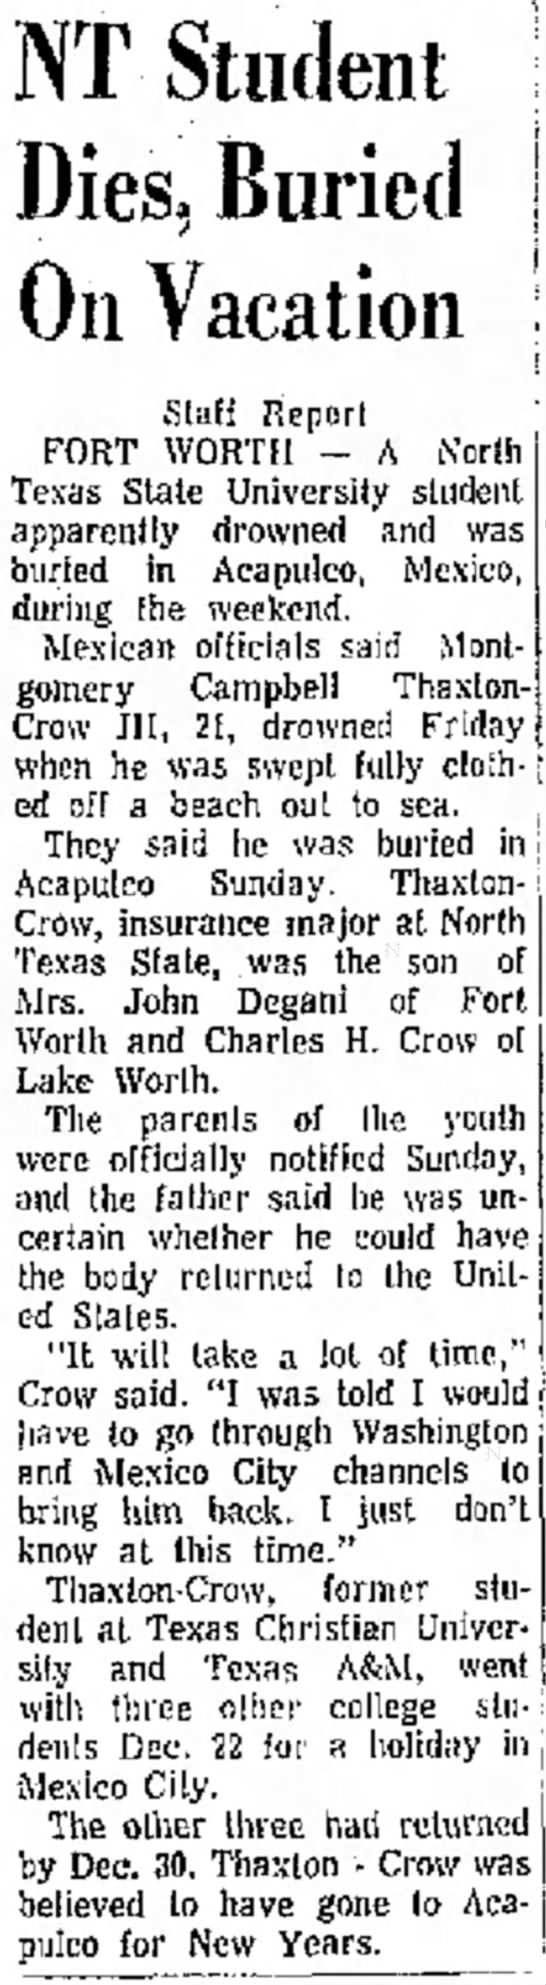 Montgomery Campbell Thaxton-Crow drowns -